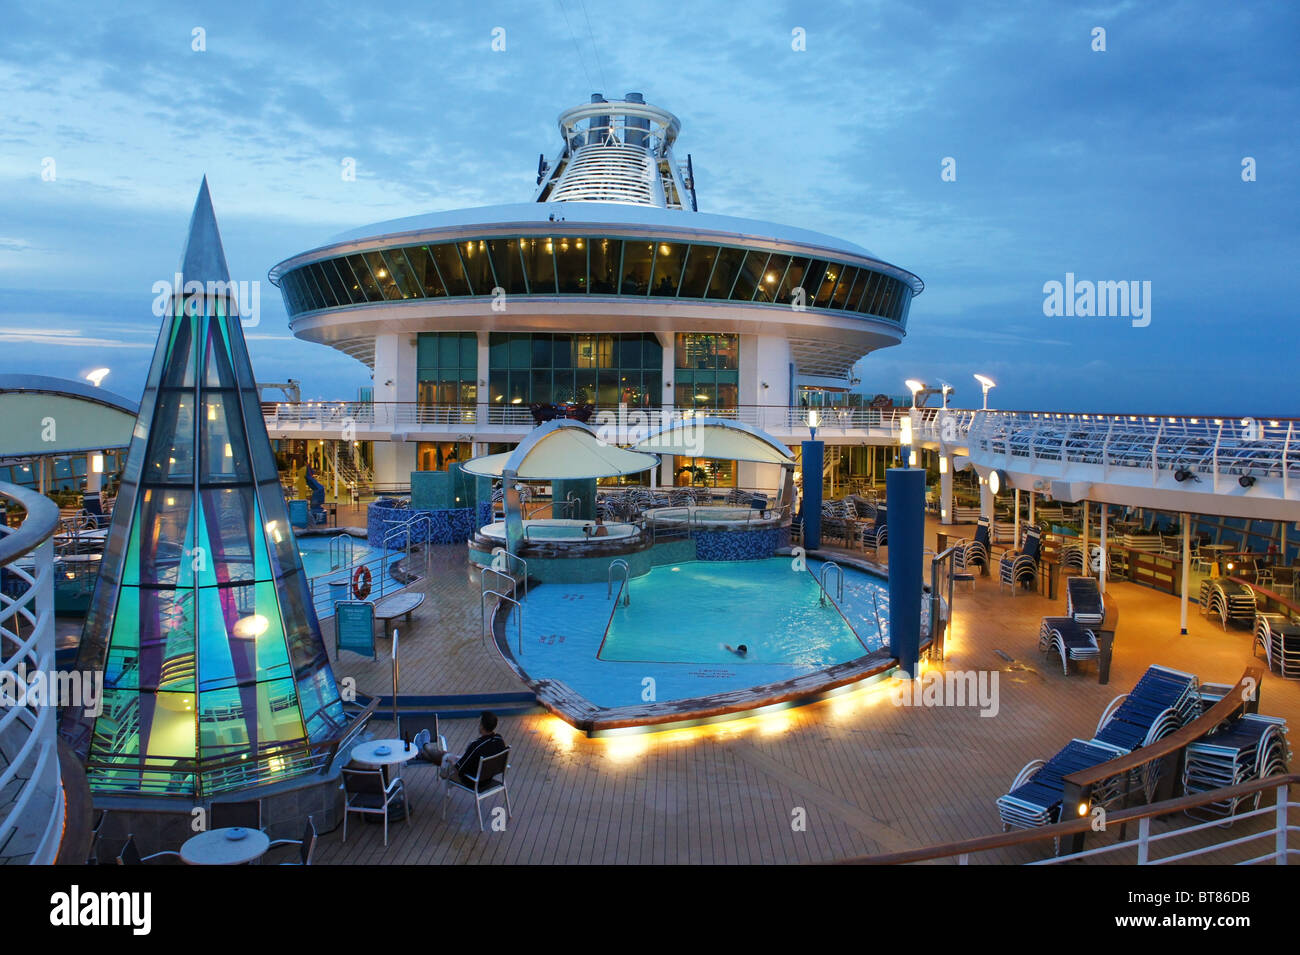 voyager of the seas the royal caribbean stock photo